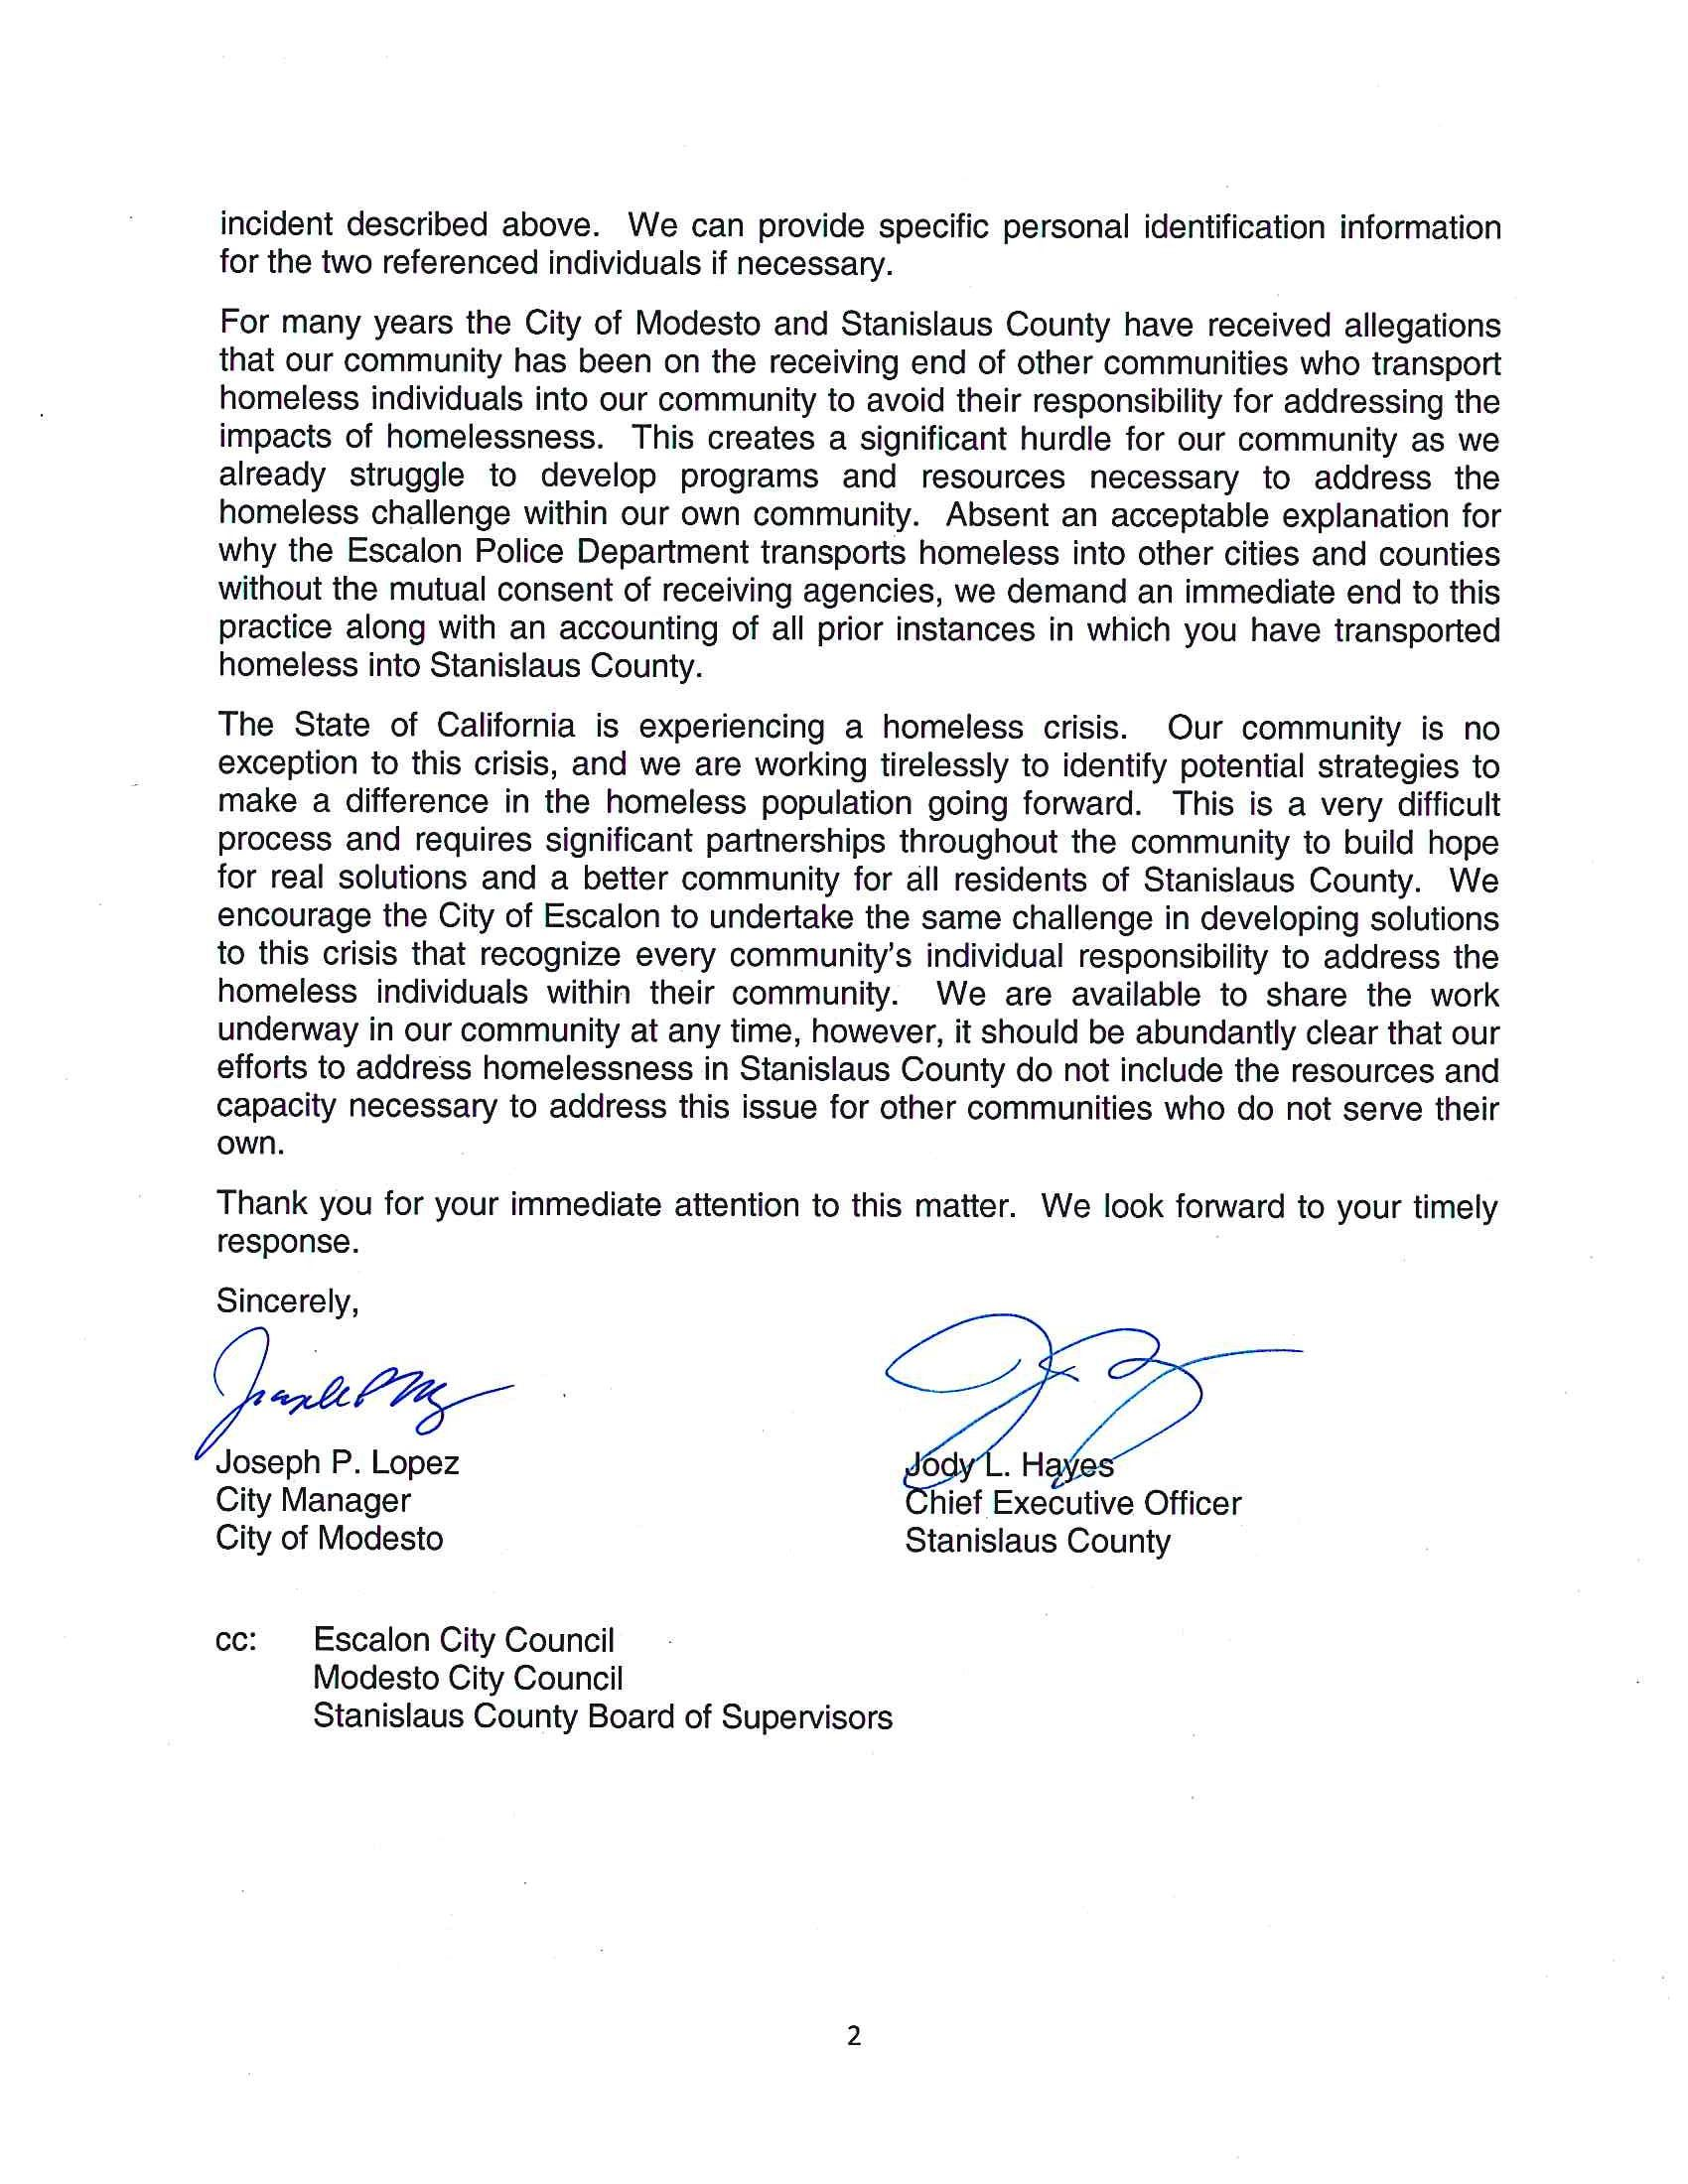 Modesto Stanislaus County Letter to Escalon Page 2